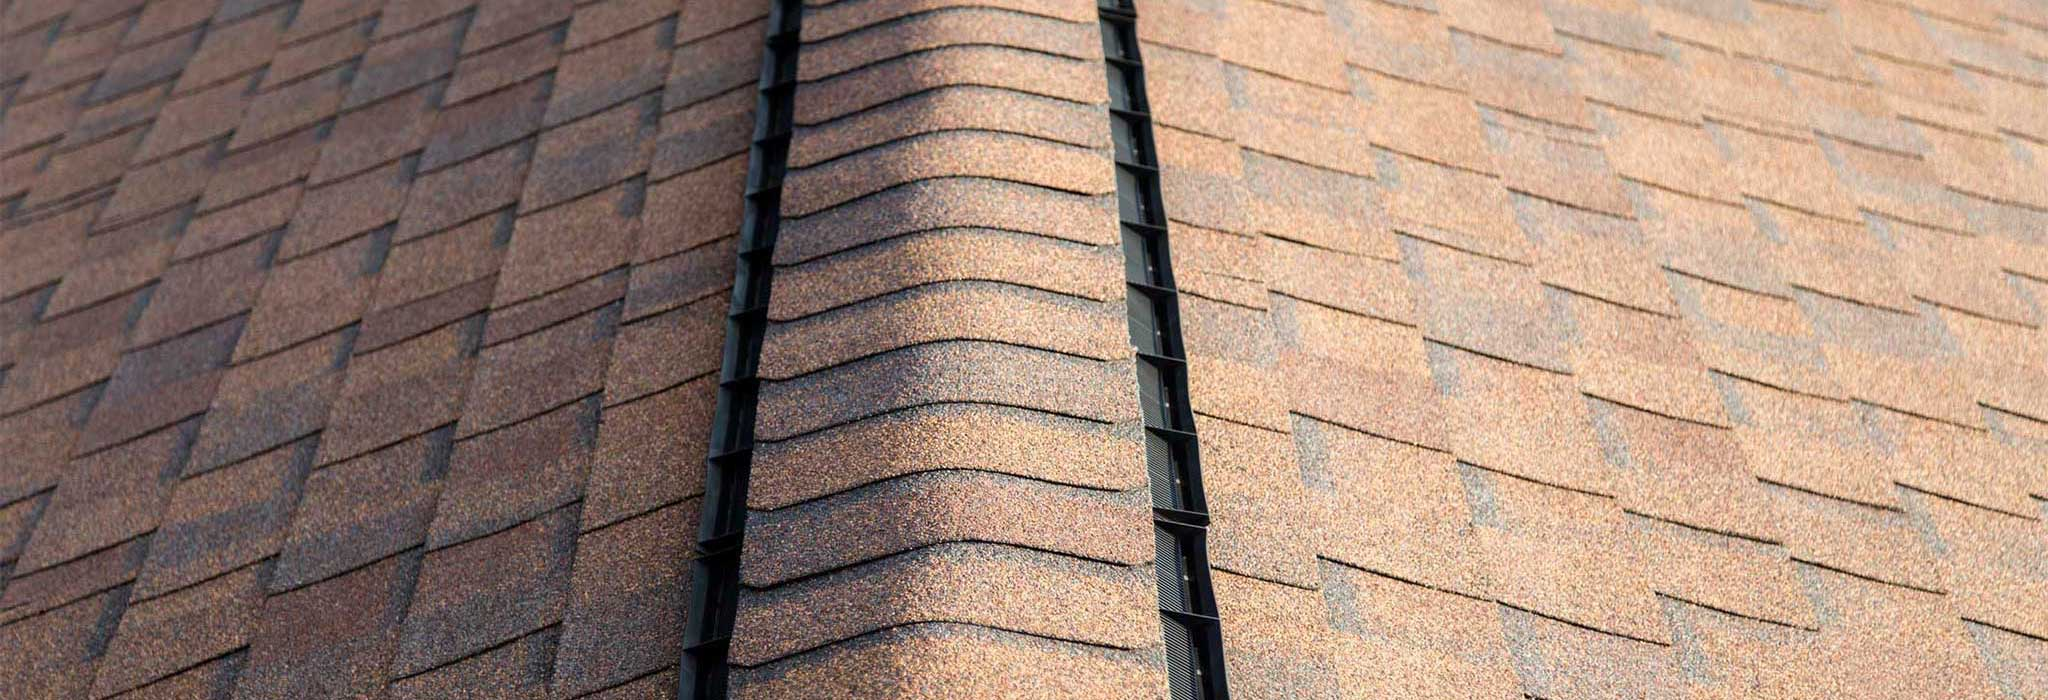 Dedicated Roofing & Exteriors - Professional Roofing Calgary Roof Repair Roof Replacement Shingle Roof